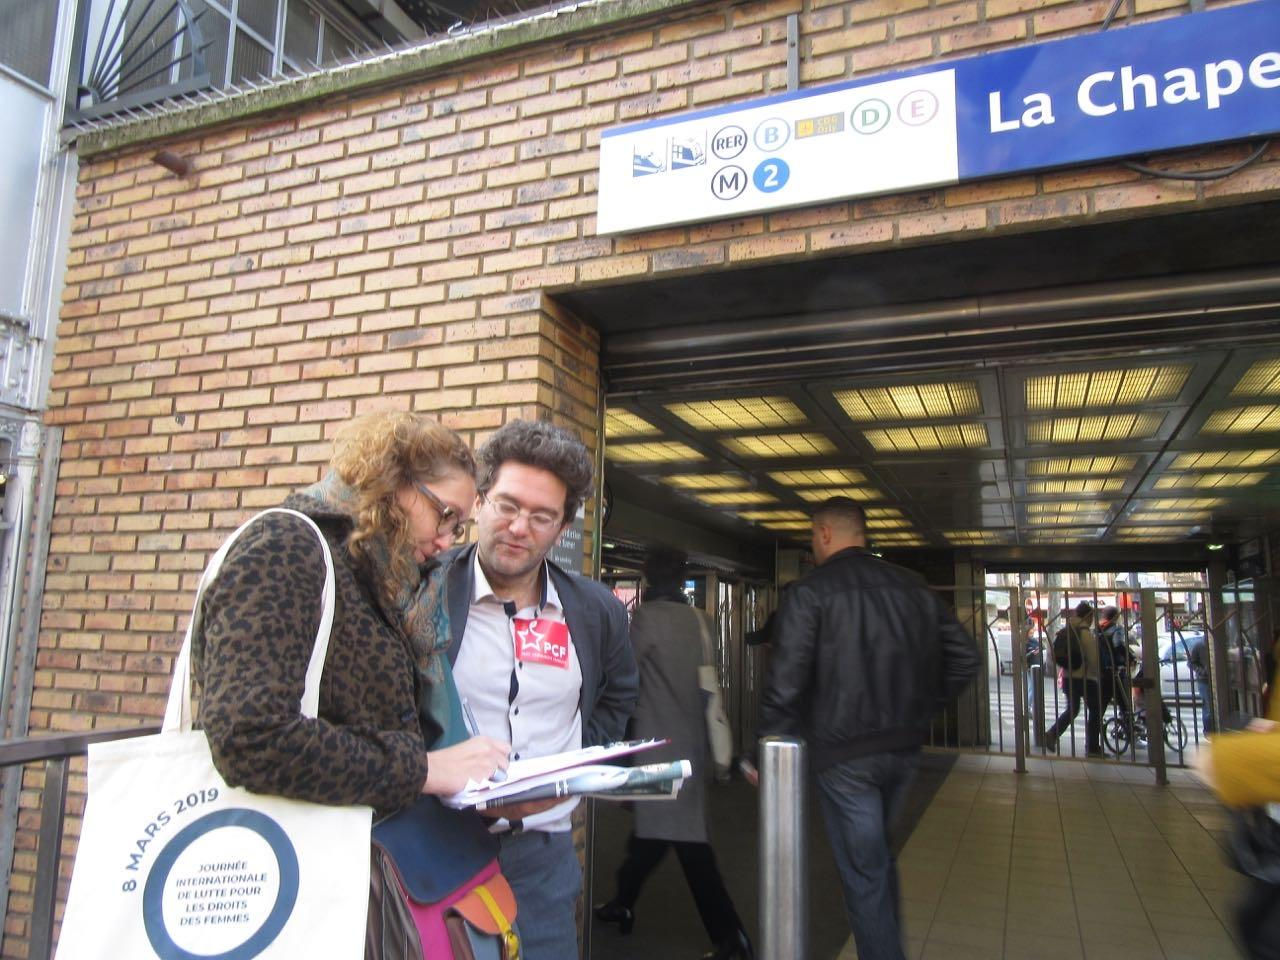 Station La Chapelle Pétitions img_0356.jpeg